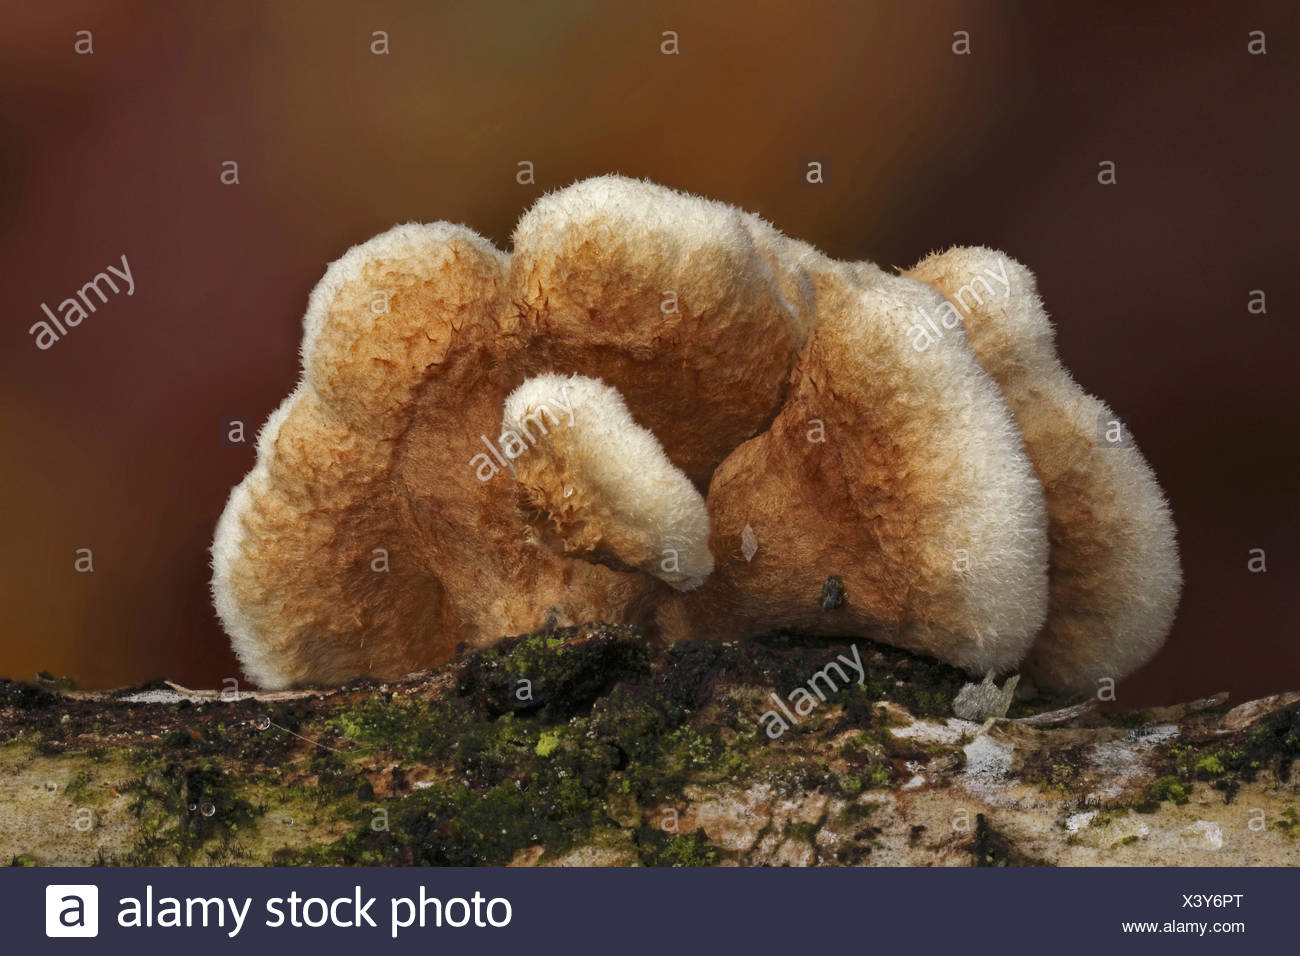 Crowded Parchment (Stereum rameale), Bad Hersfeld, Hesse - Stock Image